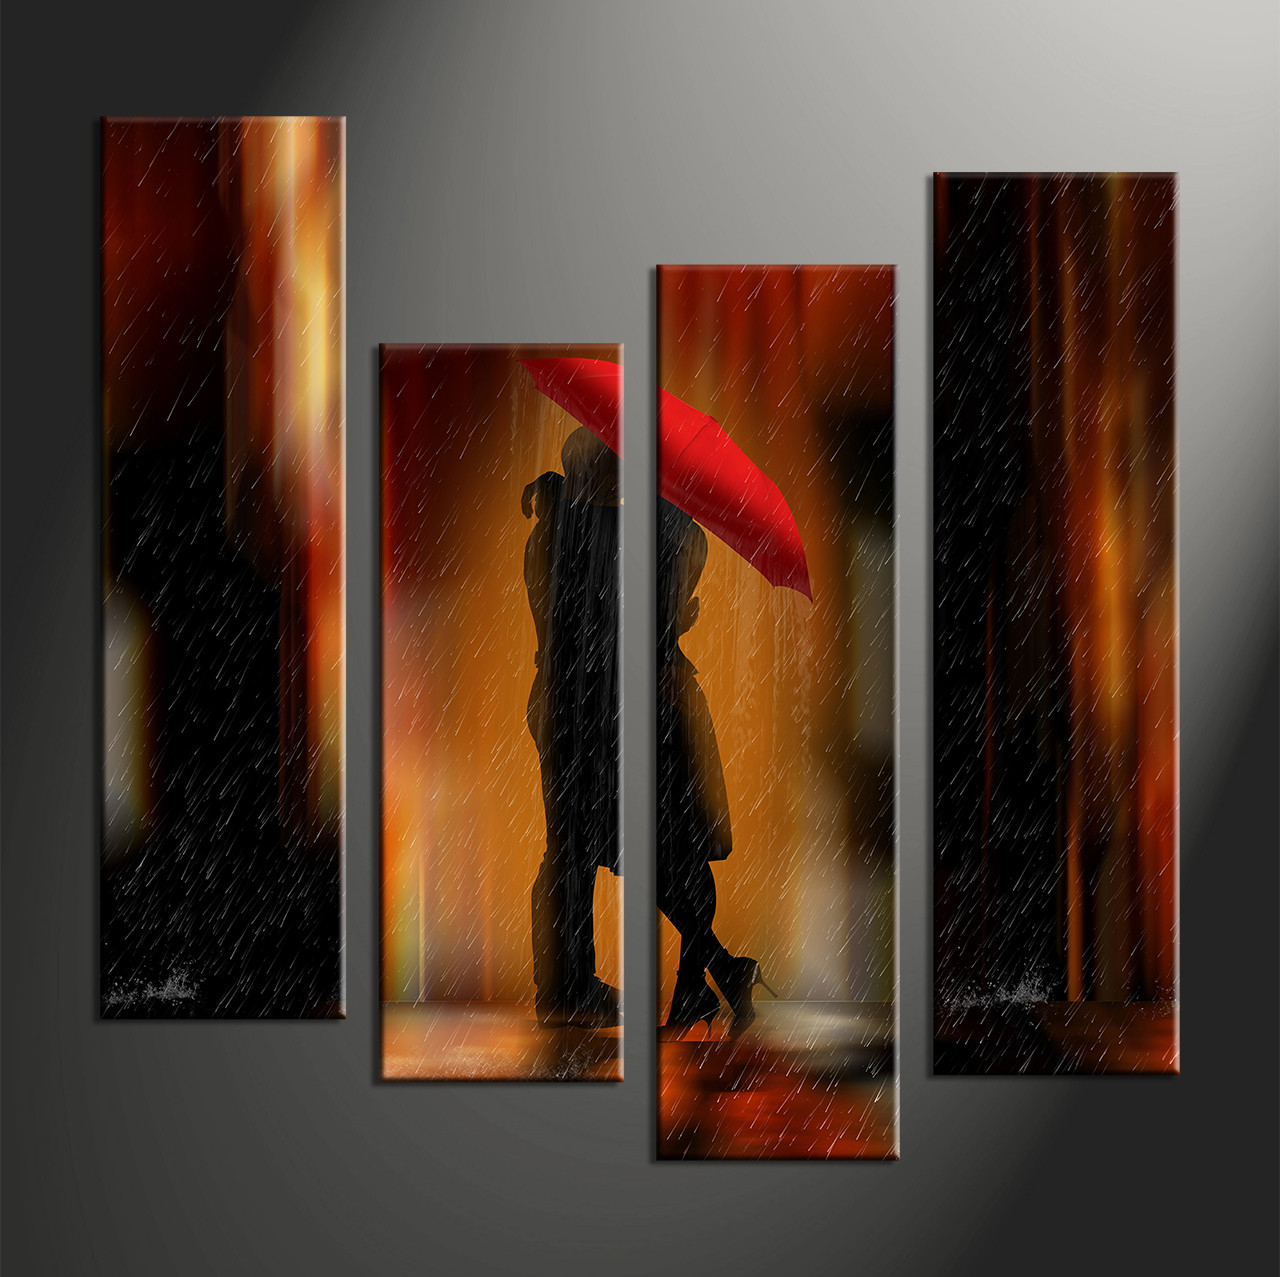 home wall decor  piece canvas art prints abstract wall decor abstracthuge.  piece red modern rain canvas art prints